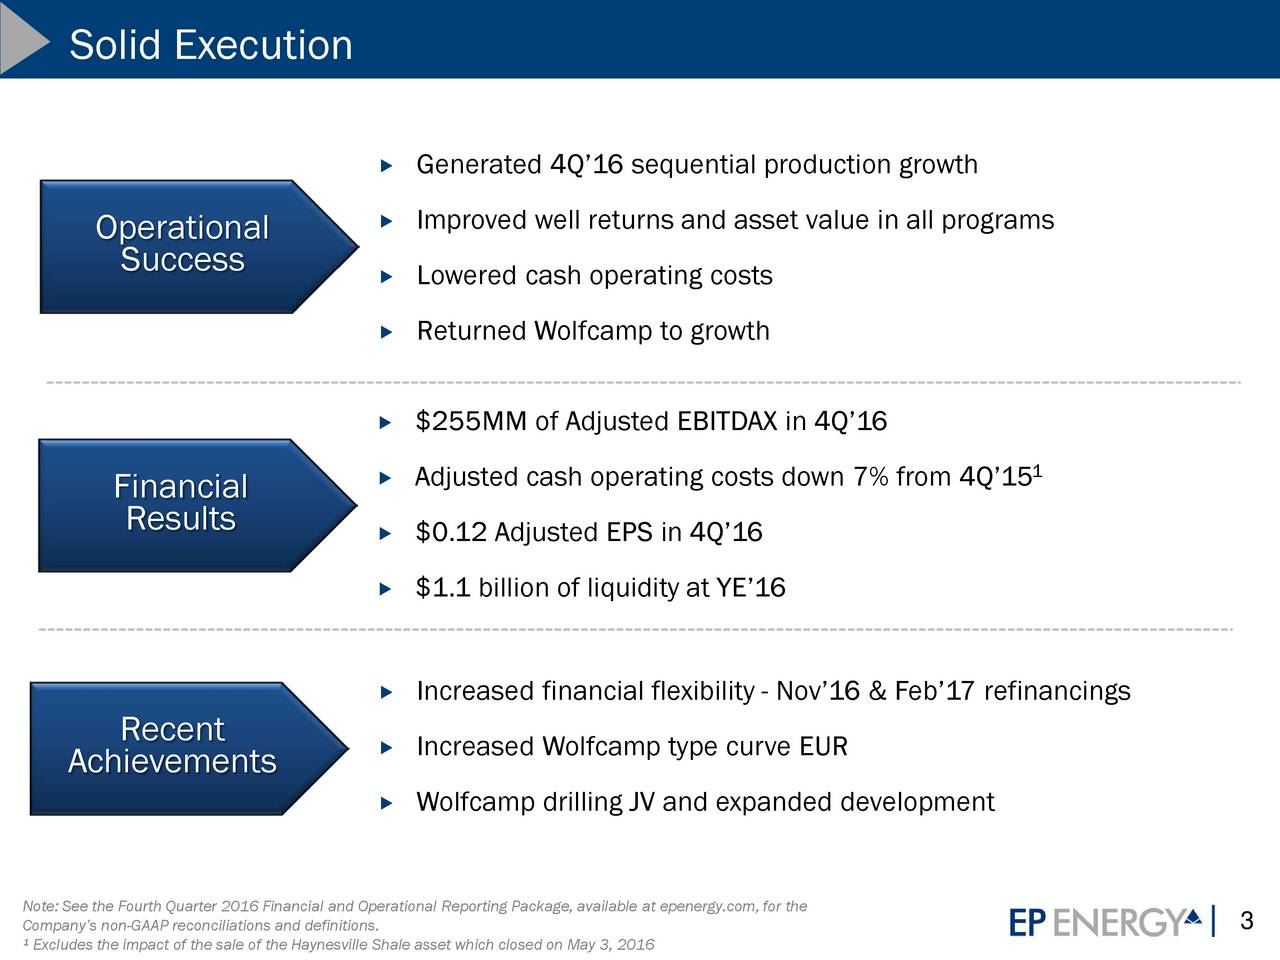 Generated 4Q16 sequential production growth Operational  Improved well returns and asset value in all programs Success Lowered cash operating costs Returned Wolfcamp to growth $255MM of Adjusted EBITDAX in 4Q16 1 Financial  Adjusted cash operating costs down 7% from 4Q15 Results $0.12 Adjusted EPS in 4Q16 $1.1 billion of liquidity at YE16 Increased financial flexibility- Nov16 & Feb17 refinancings Recent  Increased Wolfcamp type curve EUR Achievements Wolfcamp drilling JV and expanded development Note: See the Fourth Quarter 2016 Financial and Operational Reporting Package, available at epenergy.com, for the Companys non-GAAP reconciliations and definitions. 3